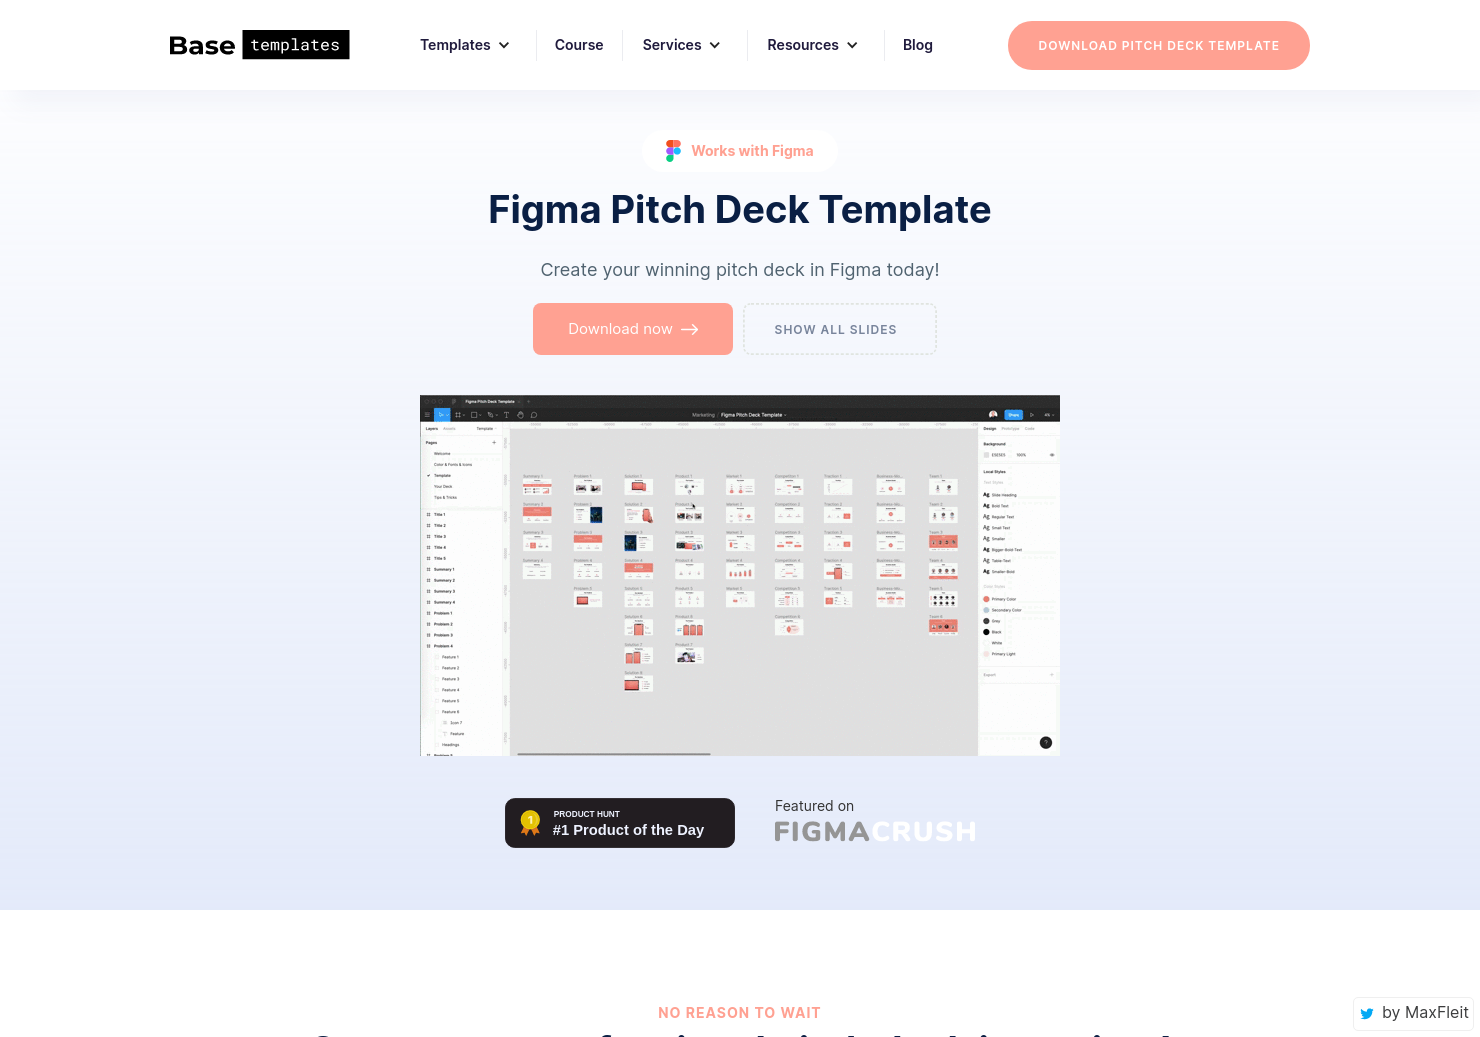 Figma Pitch Deck Template